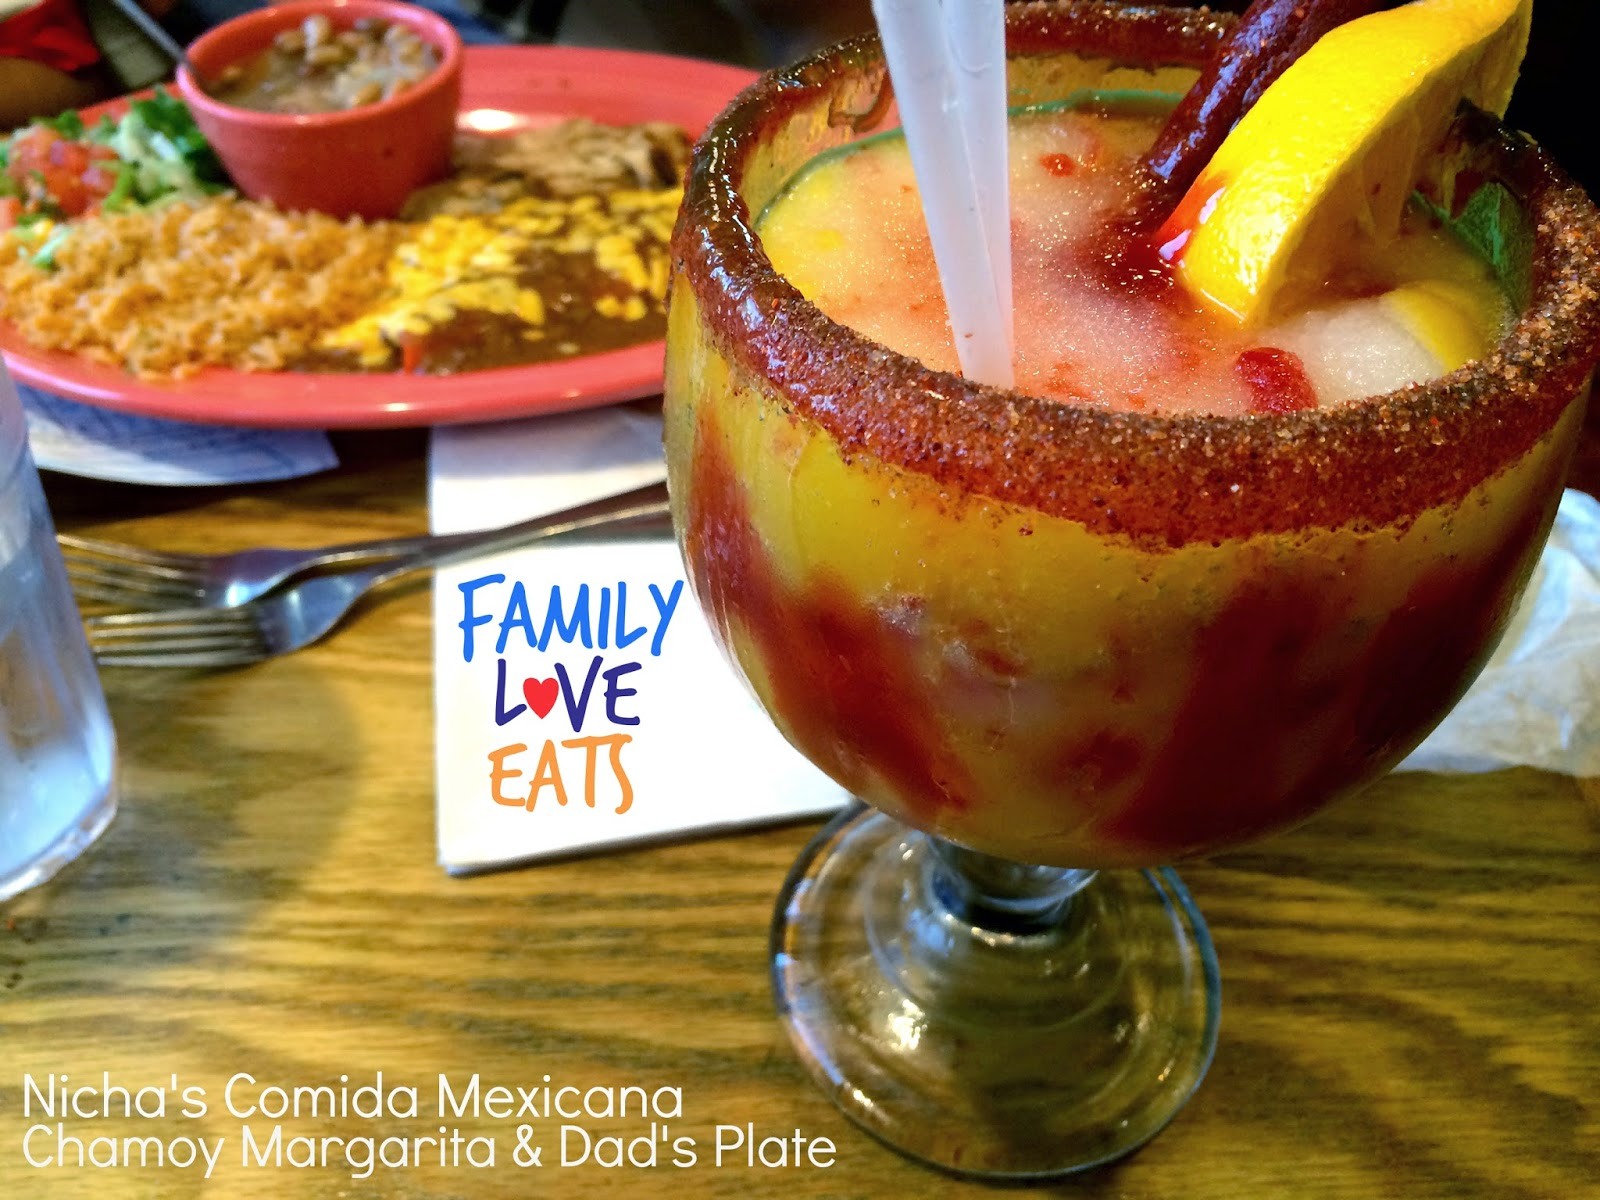 Authentic Mexican Food Near the San Antonio Historic Missions - Kids Eat Free